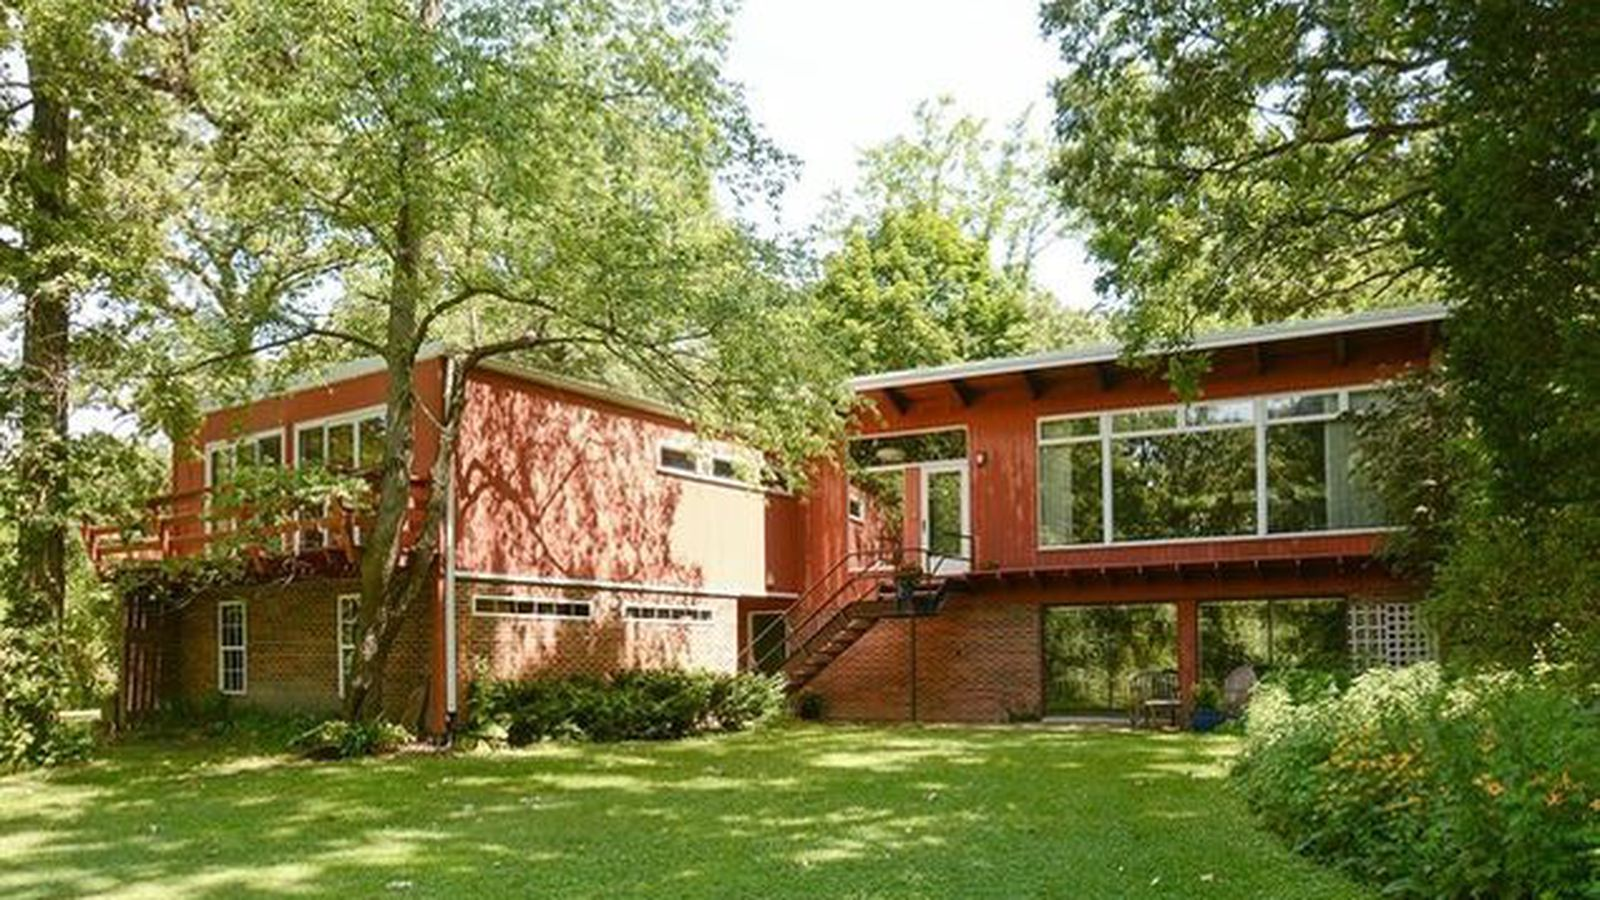 Walnut Paneled Palos Mid Century On Two Acres Wants 449k Curbed Chicago